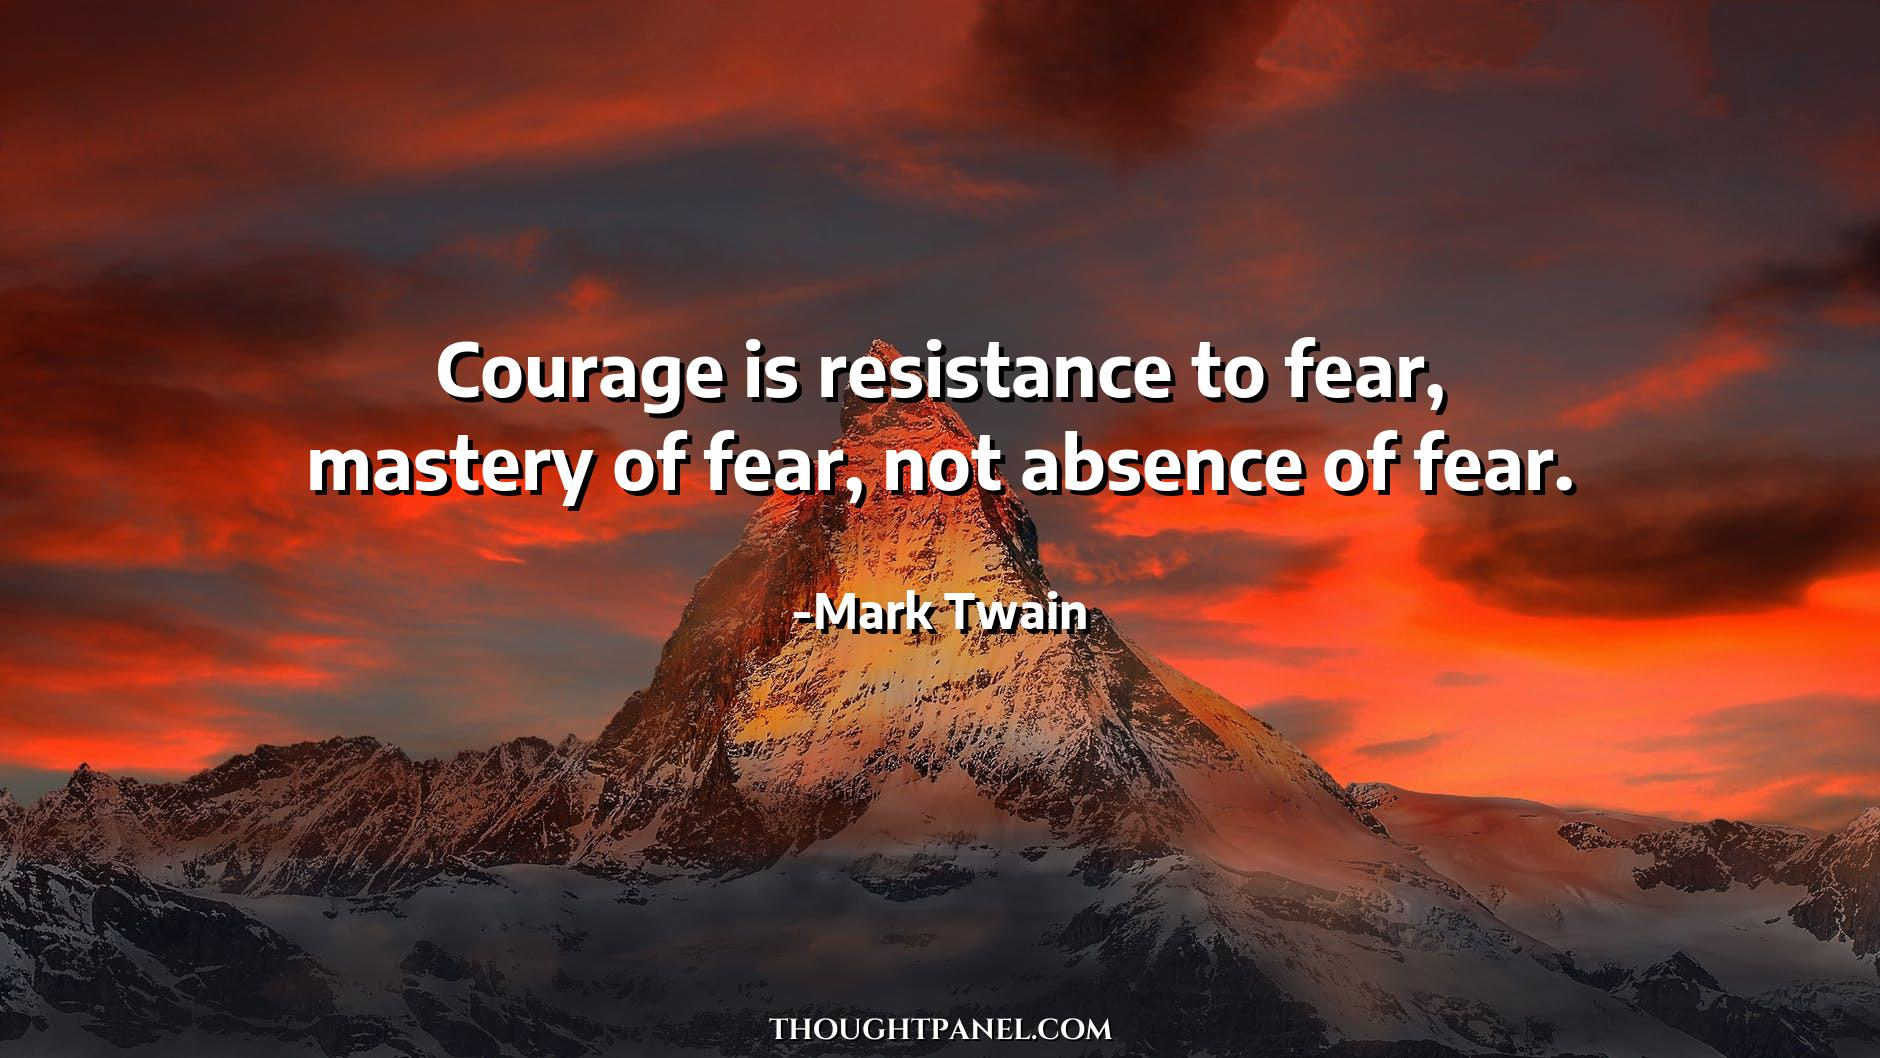 """Courage is resistance to fear, mastery of fear, not absence of fear."" – Mark Twain [1880 X 1058]"